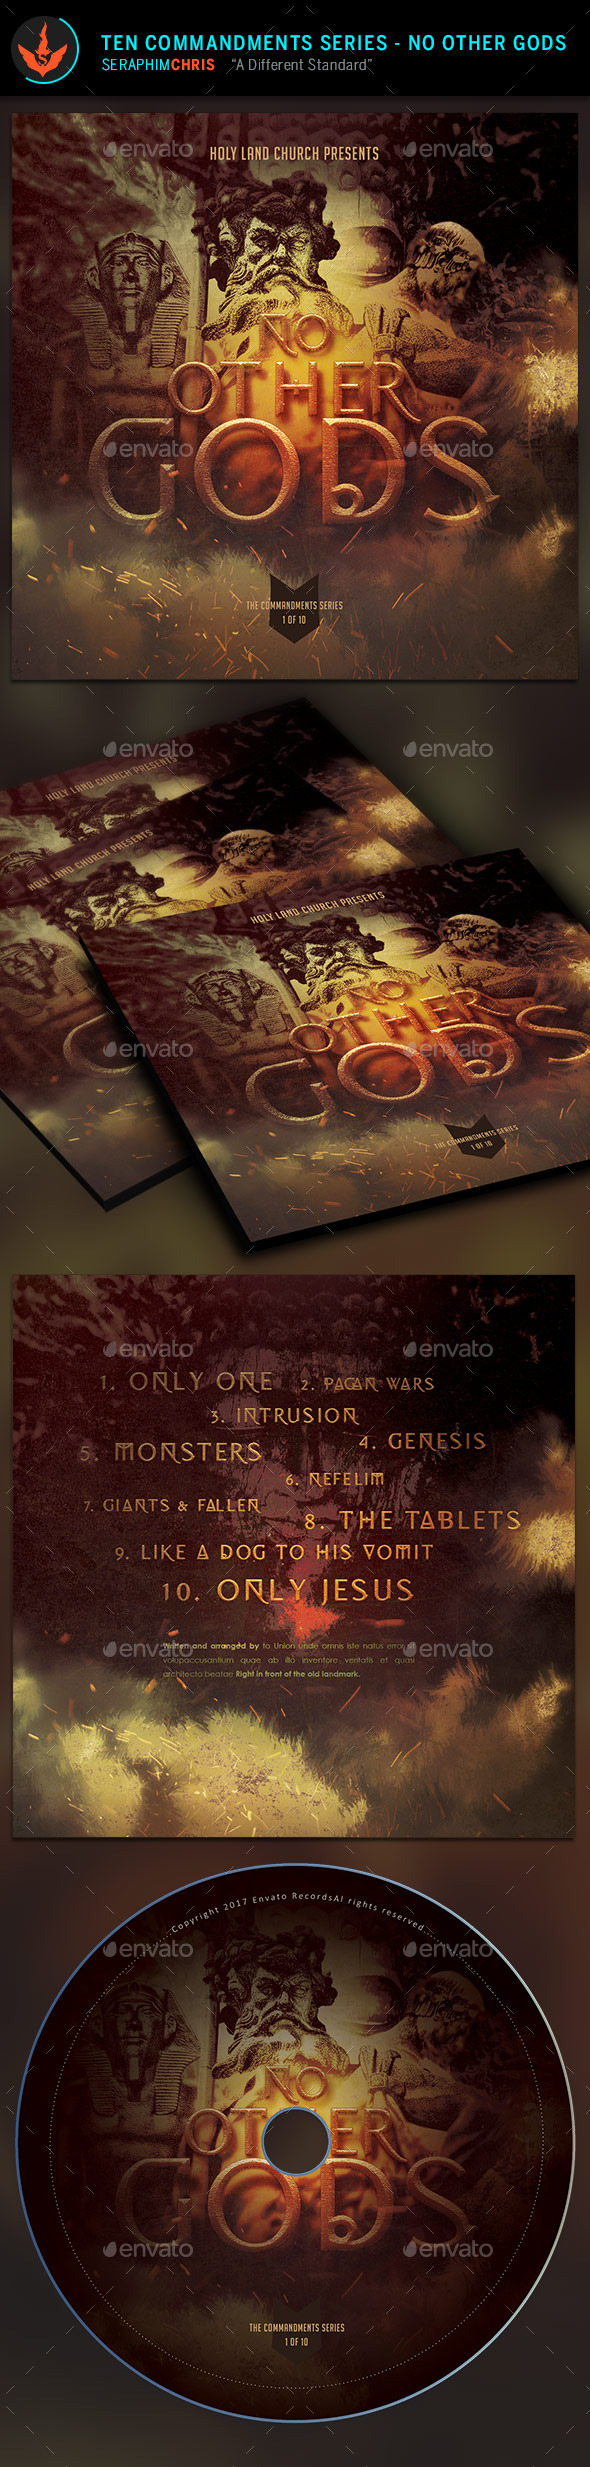 GraphicRiver No Other Gods CD Artwork Template 9723106